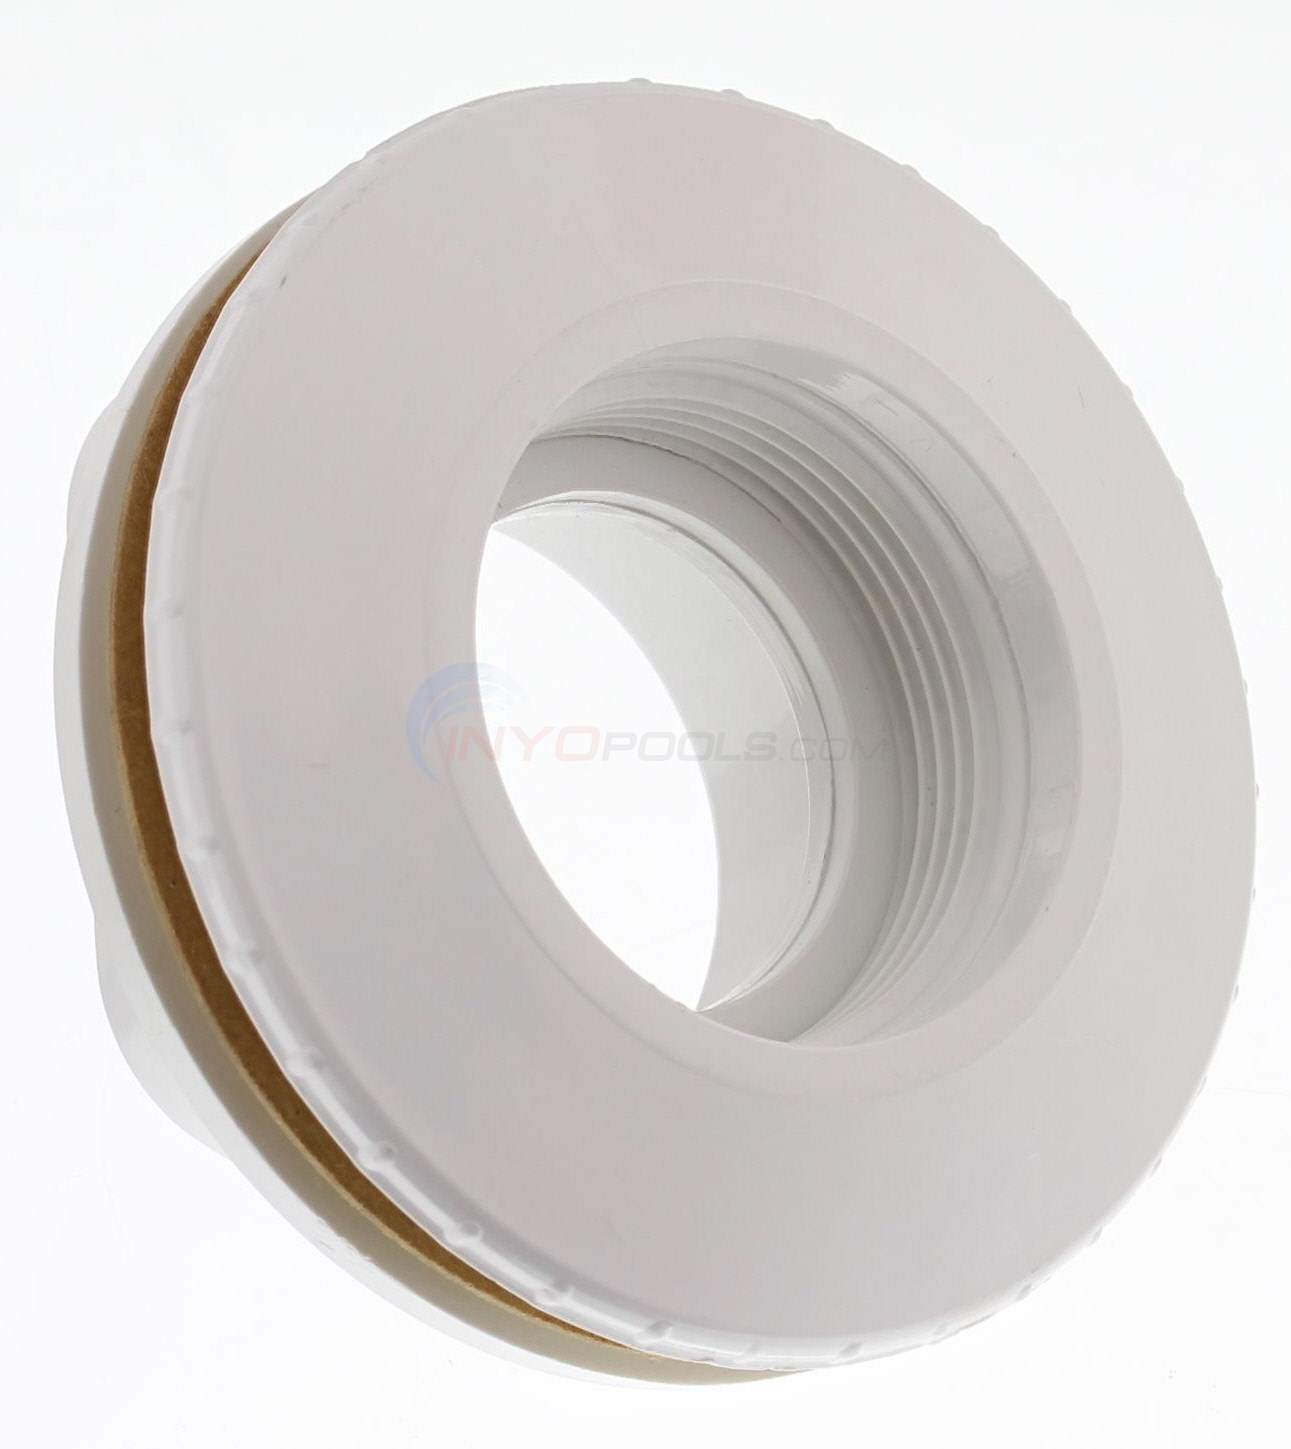 "FIBERGLAS POOL/SPA LENS HOUSING, WHITE 1 1/2"" S"